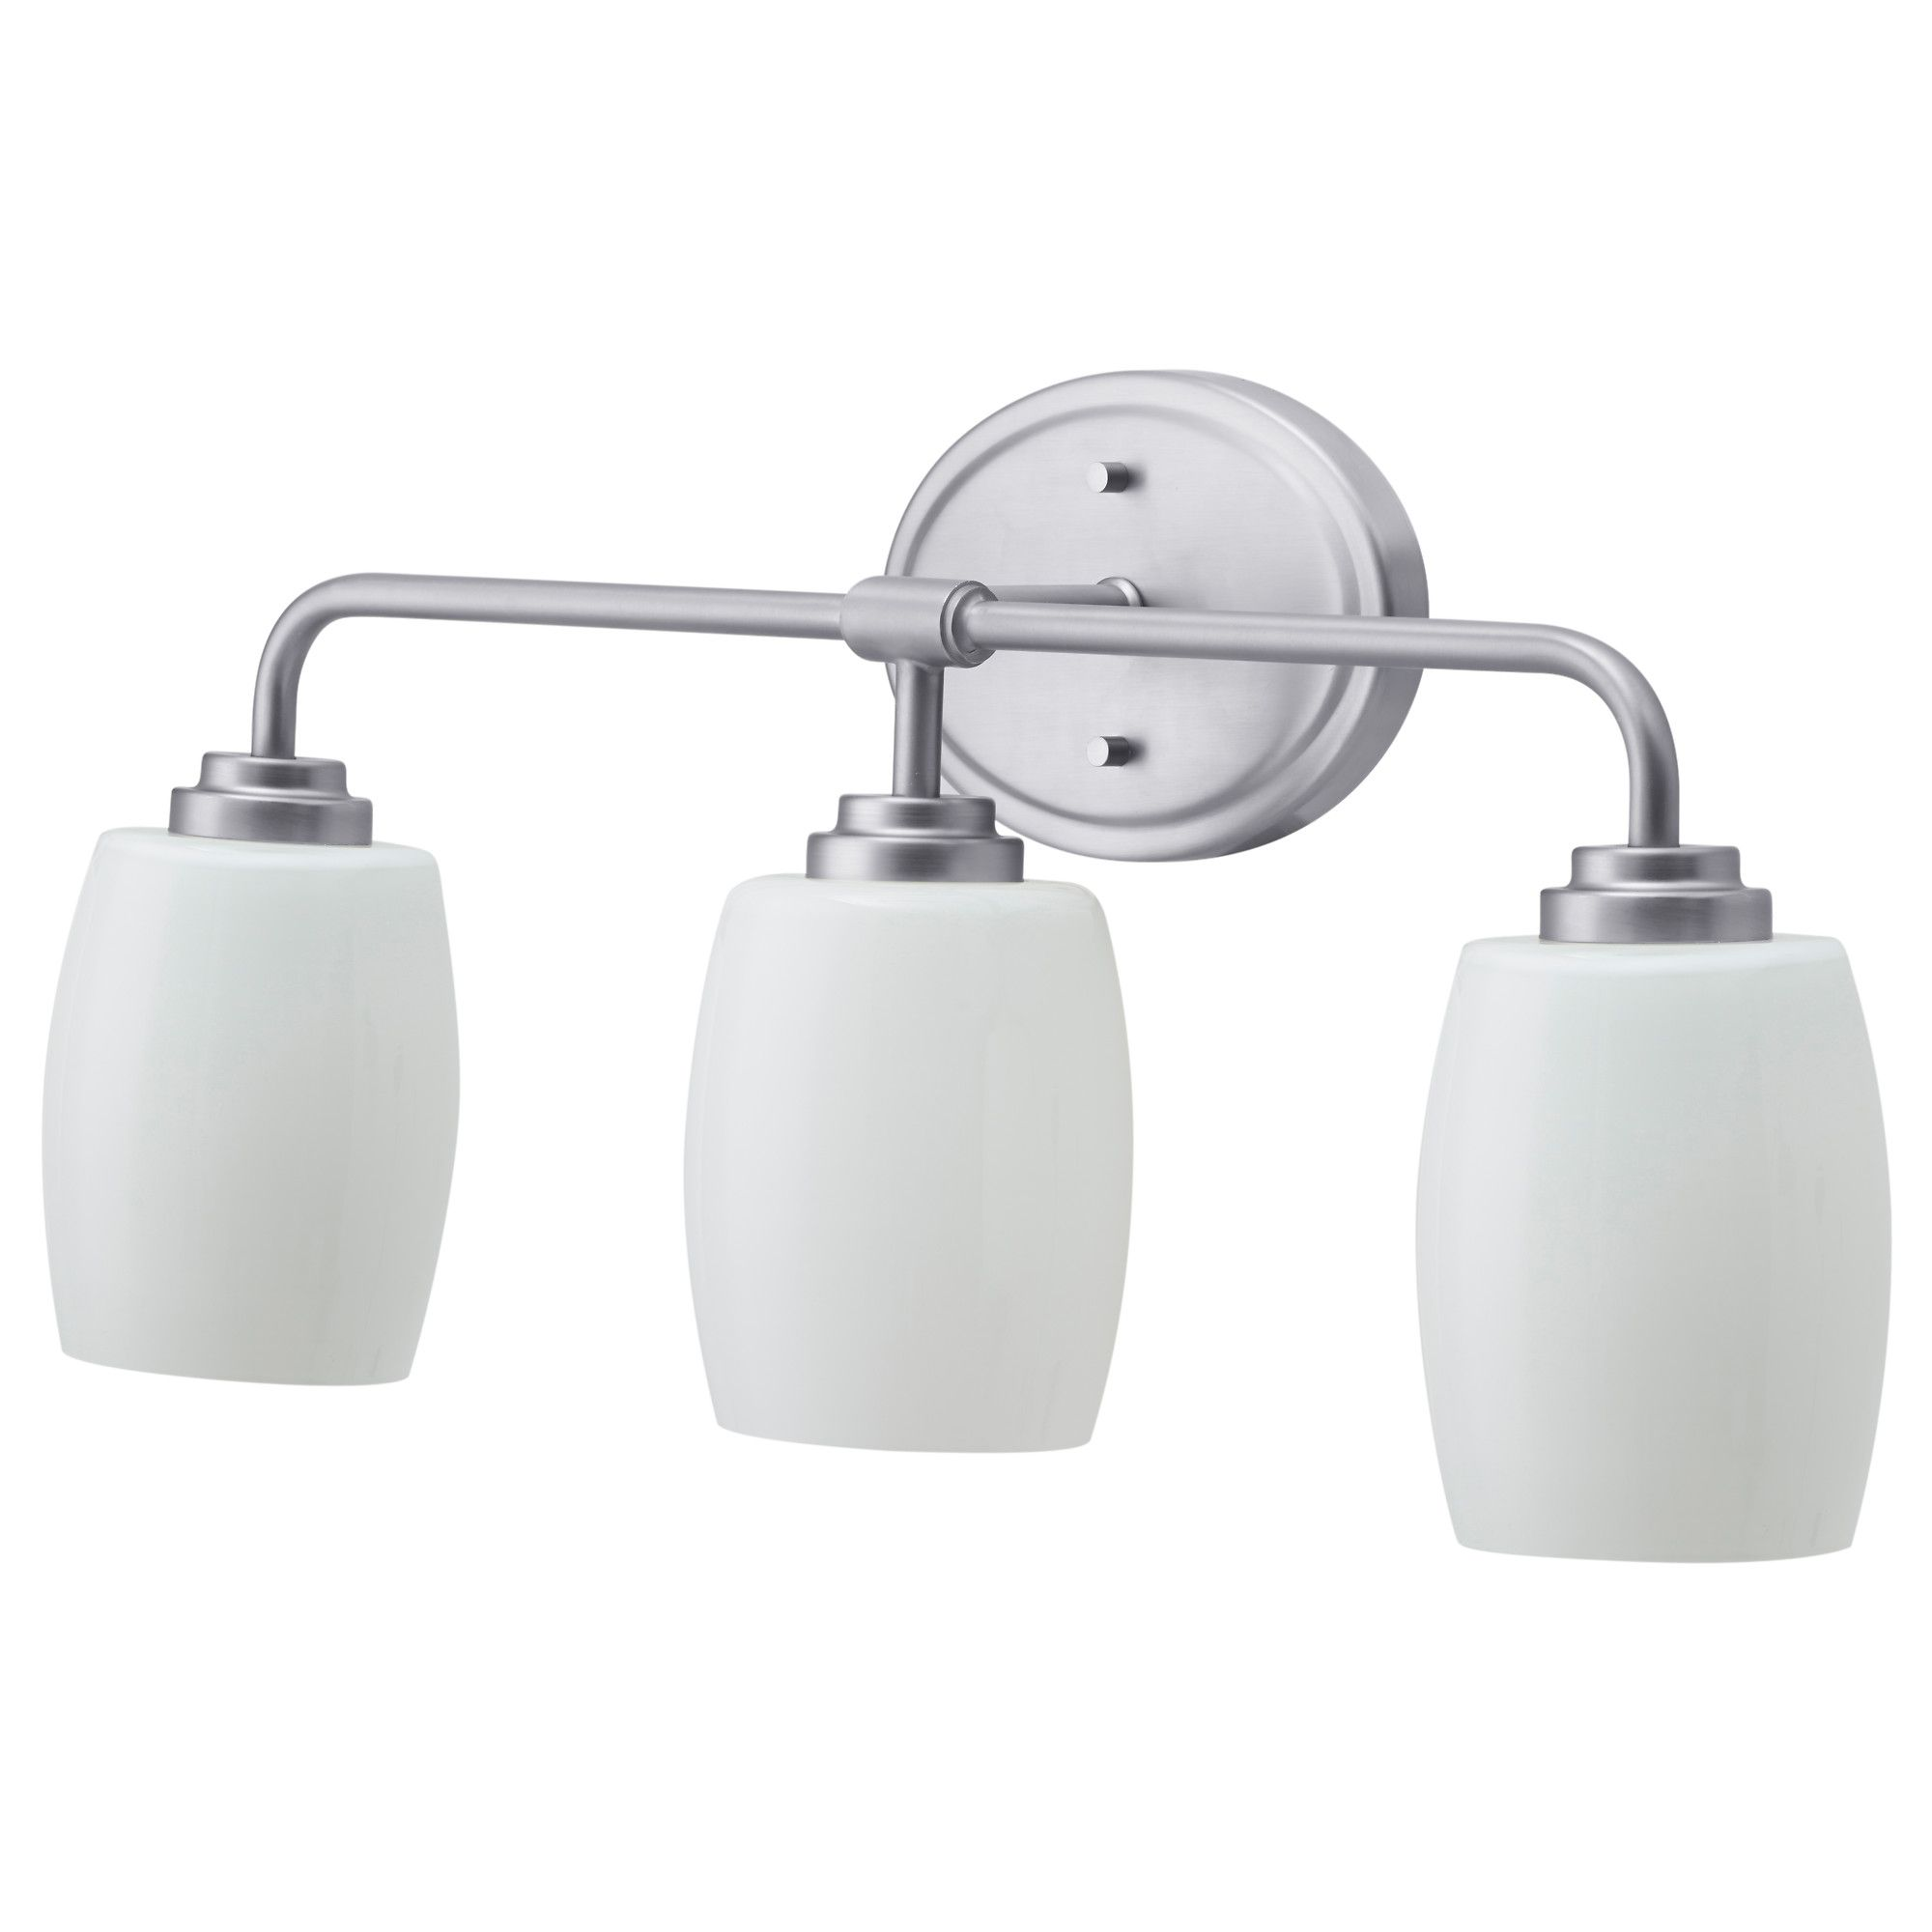 Bathroom Lighting Ikea: VALLMORA Wall Lamp, 3-spots, Nickel Plated